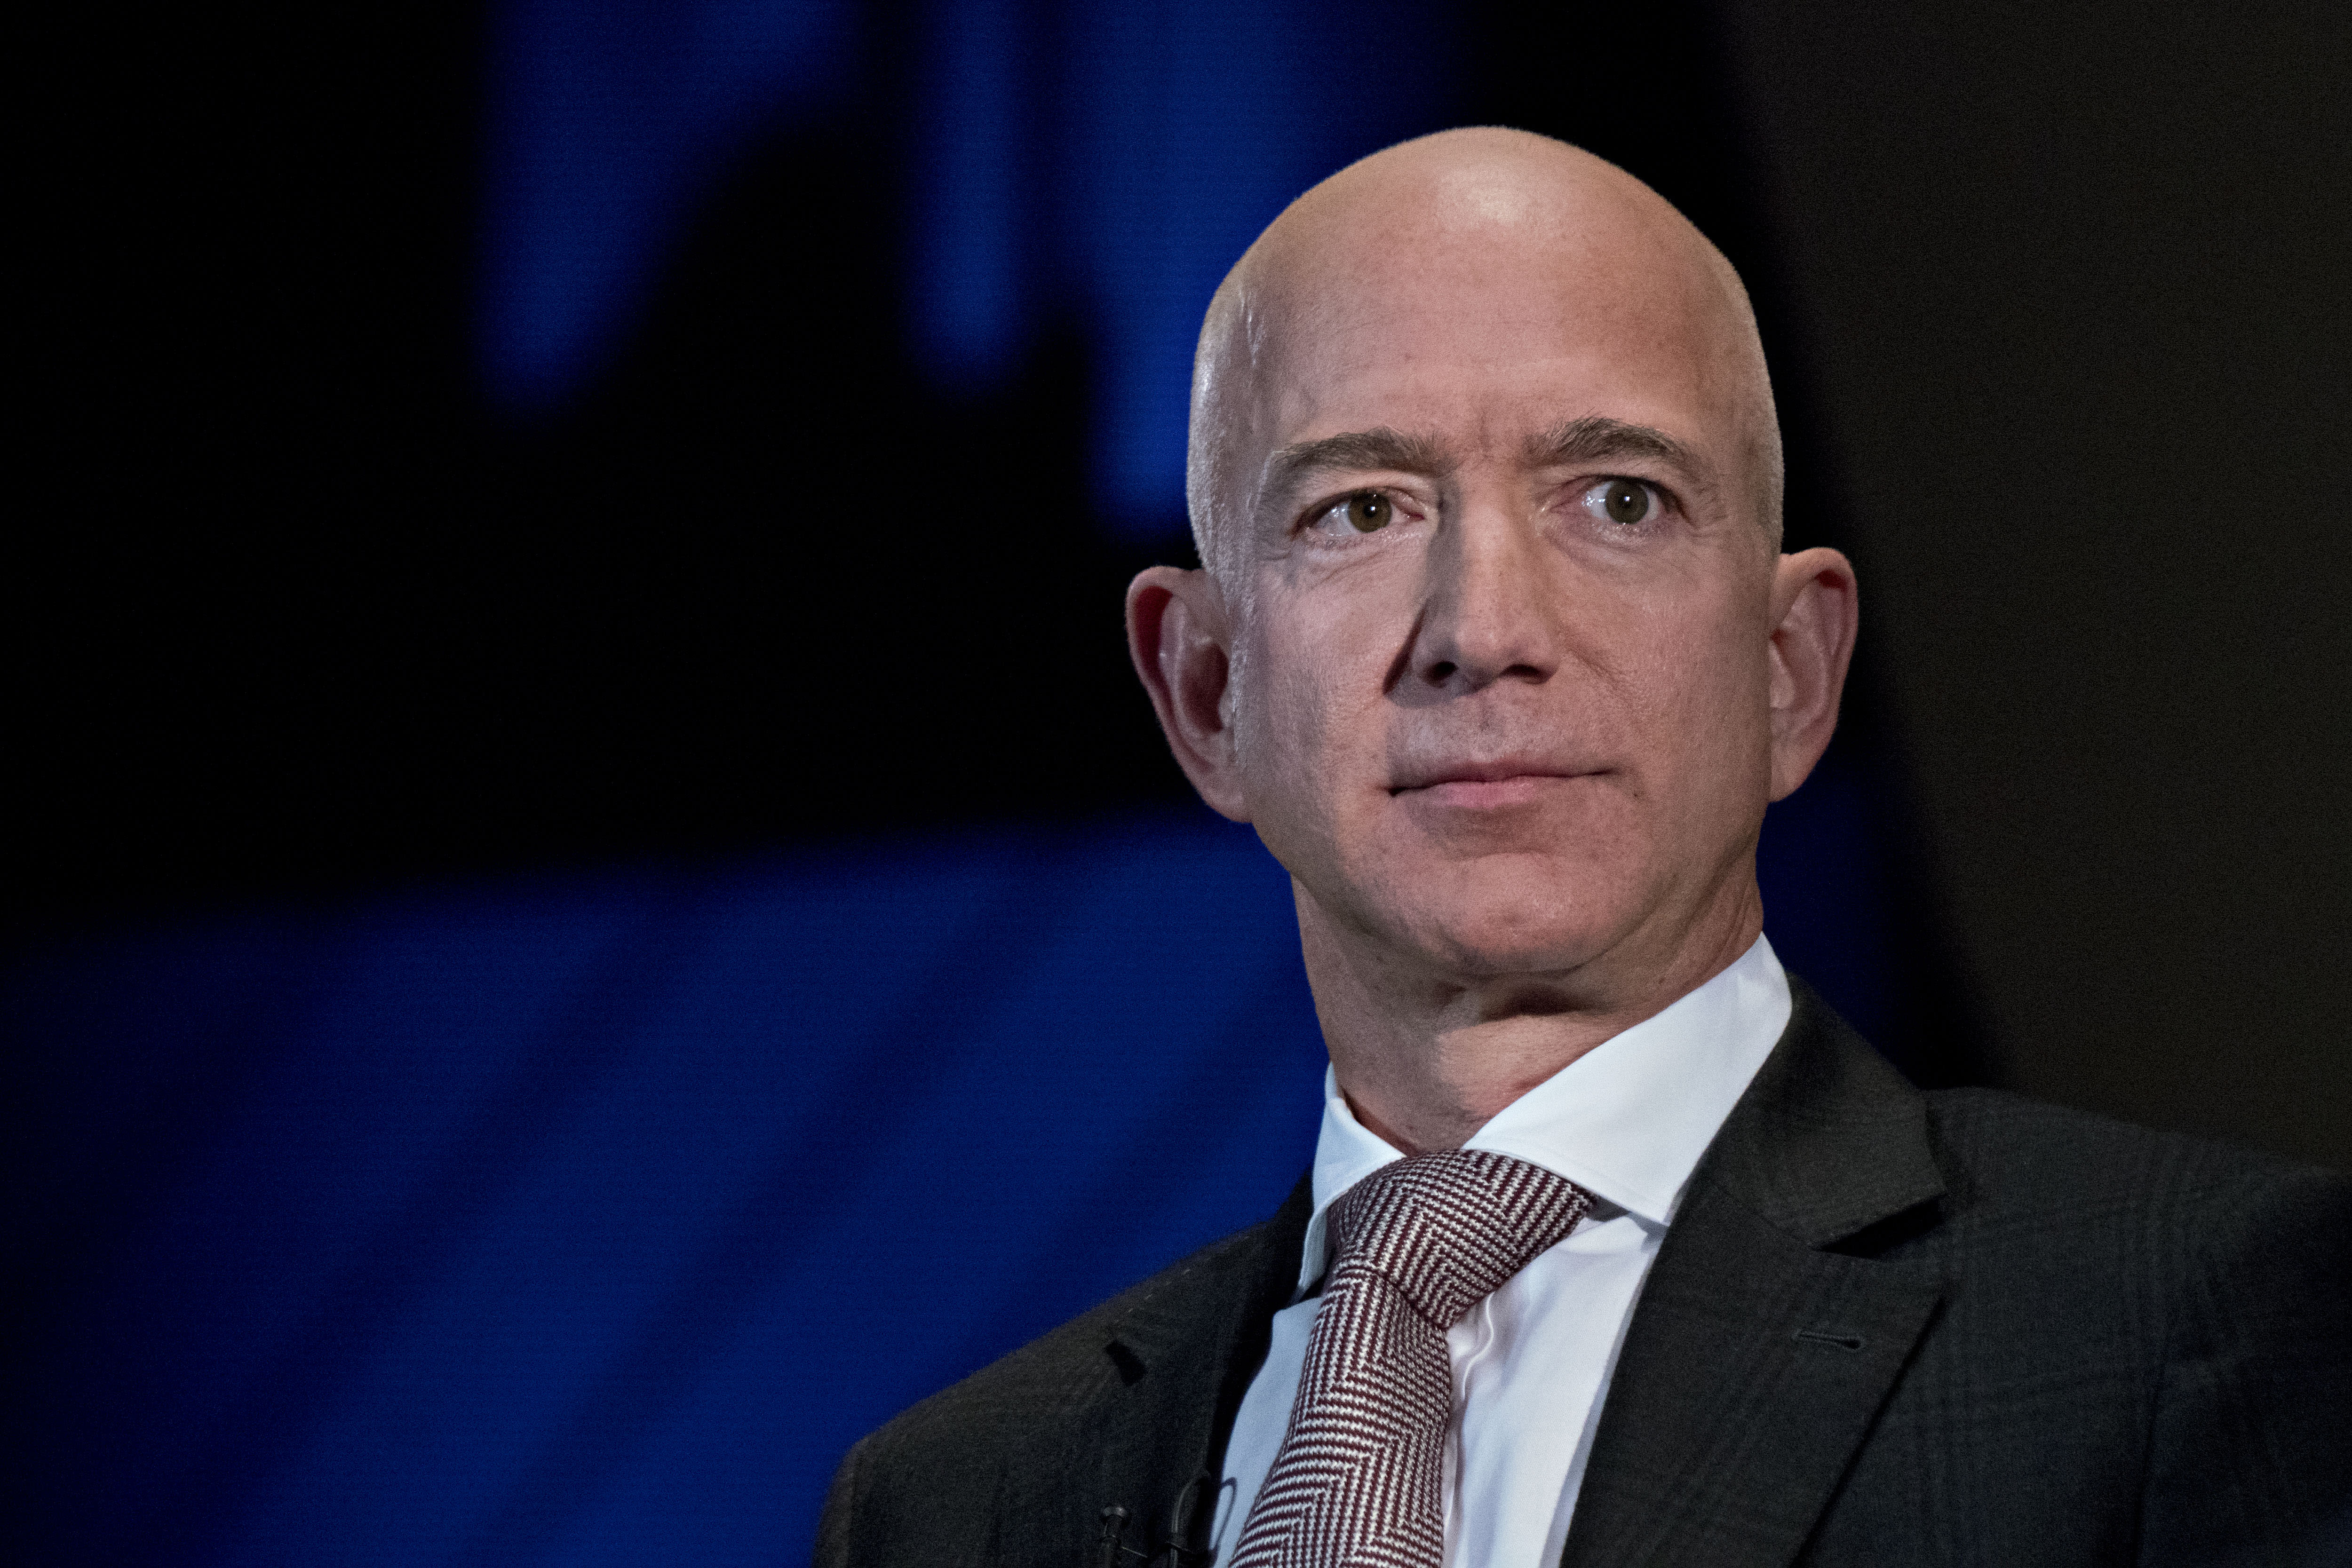 Stock market live updates: Dow down 100, Amazon up 10% to $1 trillion, Caterpillar's warning